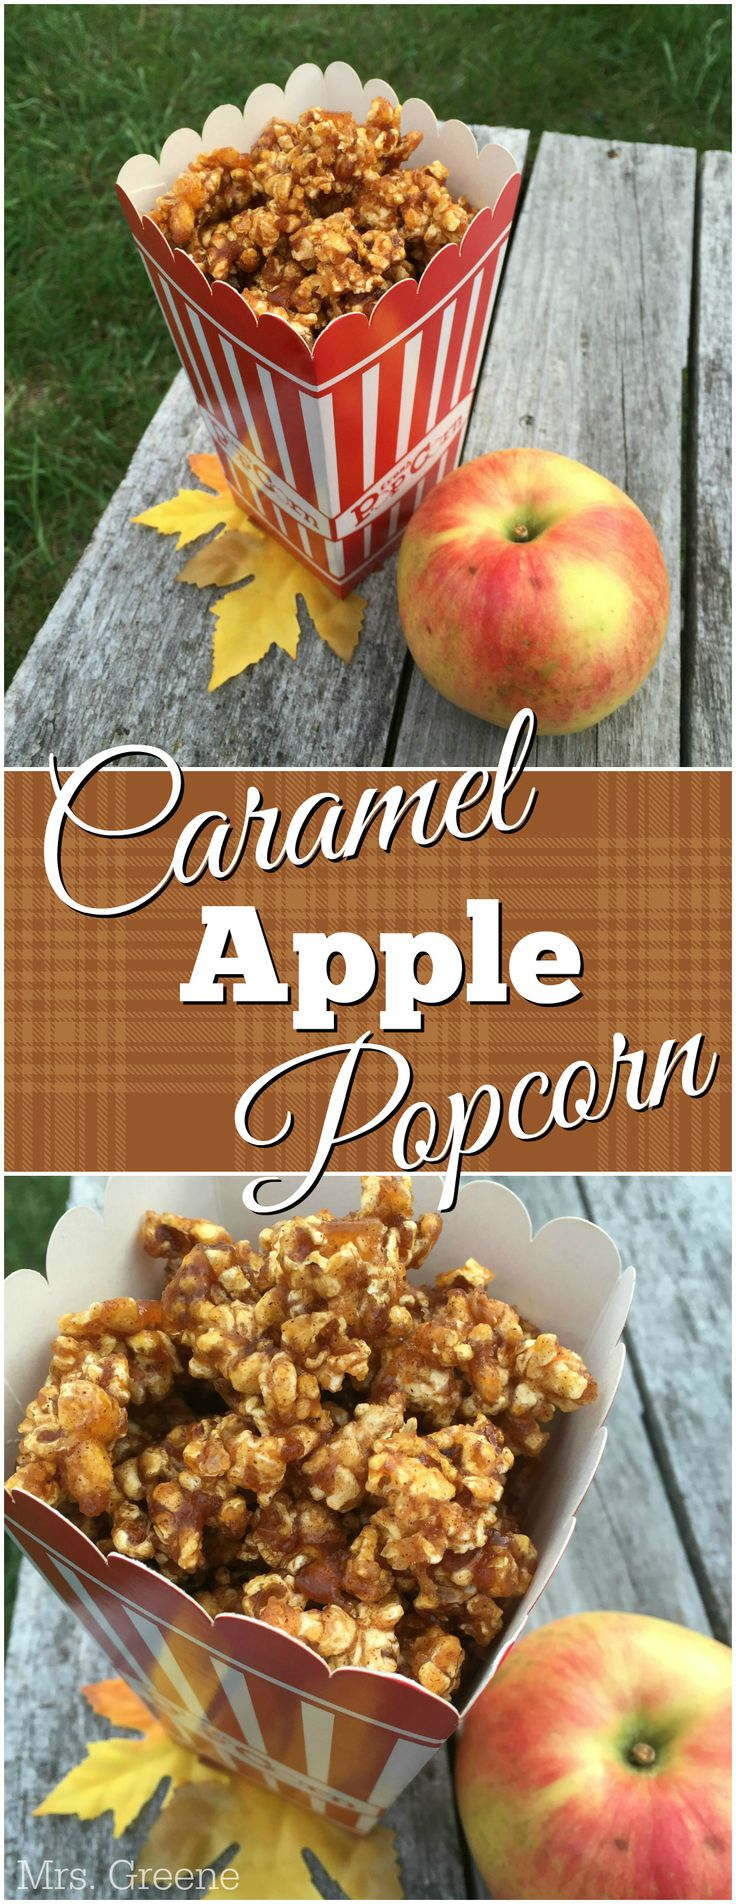 Caramel Apple Popcorn - delicious and inexpensive idea for a holiday treat! You can even get most of the ingredients you need at the dollar store, including popcorn boxes to package it in for gifting!